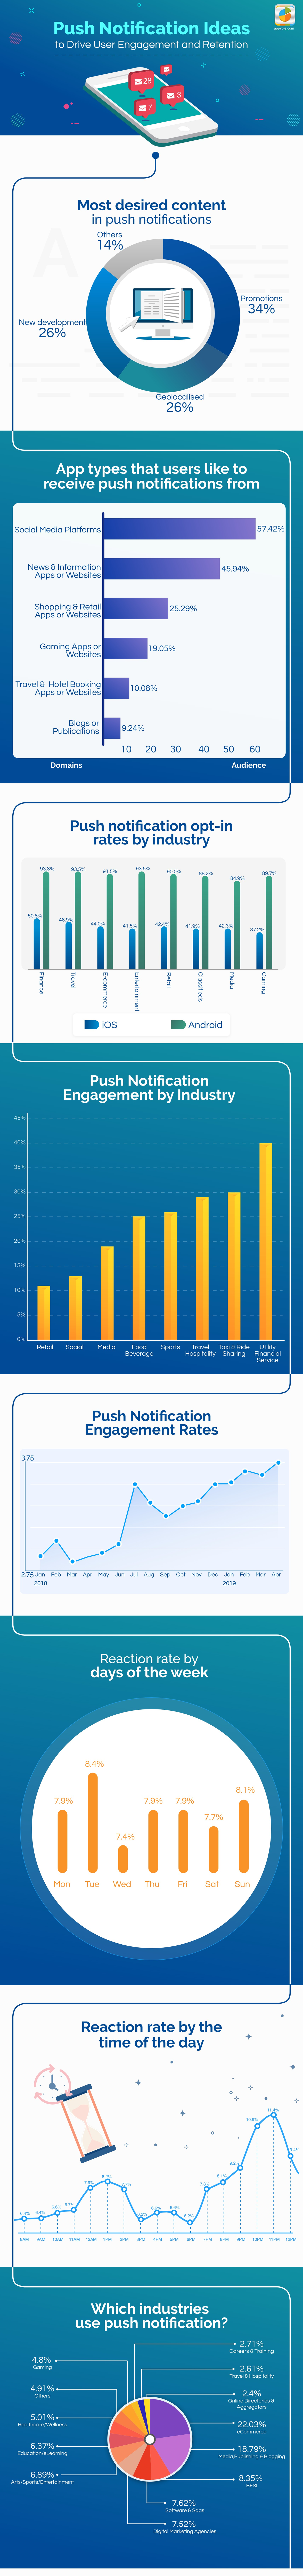 50 Push Notification Examples & Ideas to Drive User Engagement and Retention